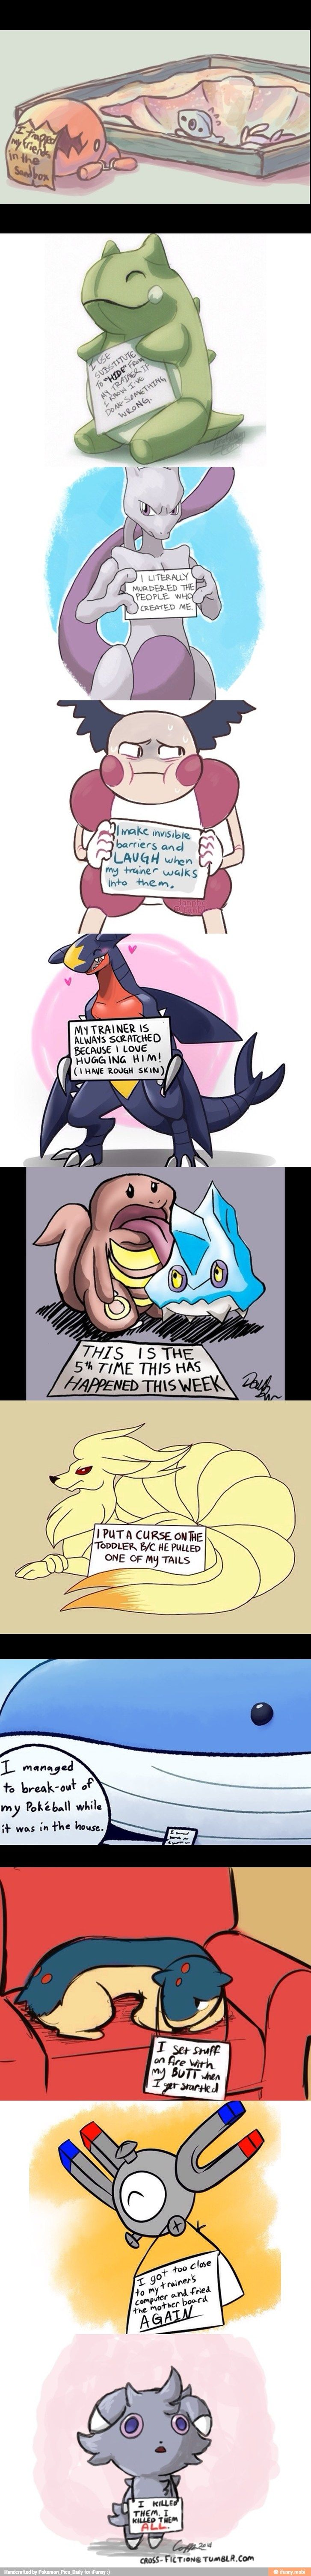 Pokemon shaming Good.